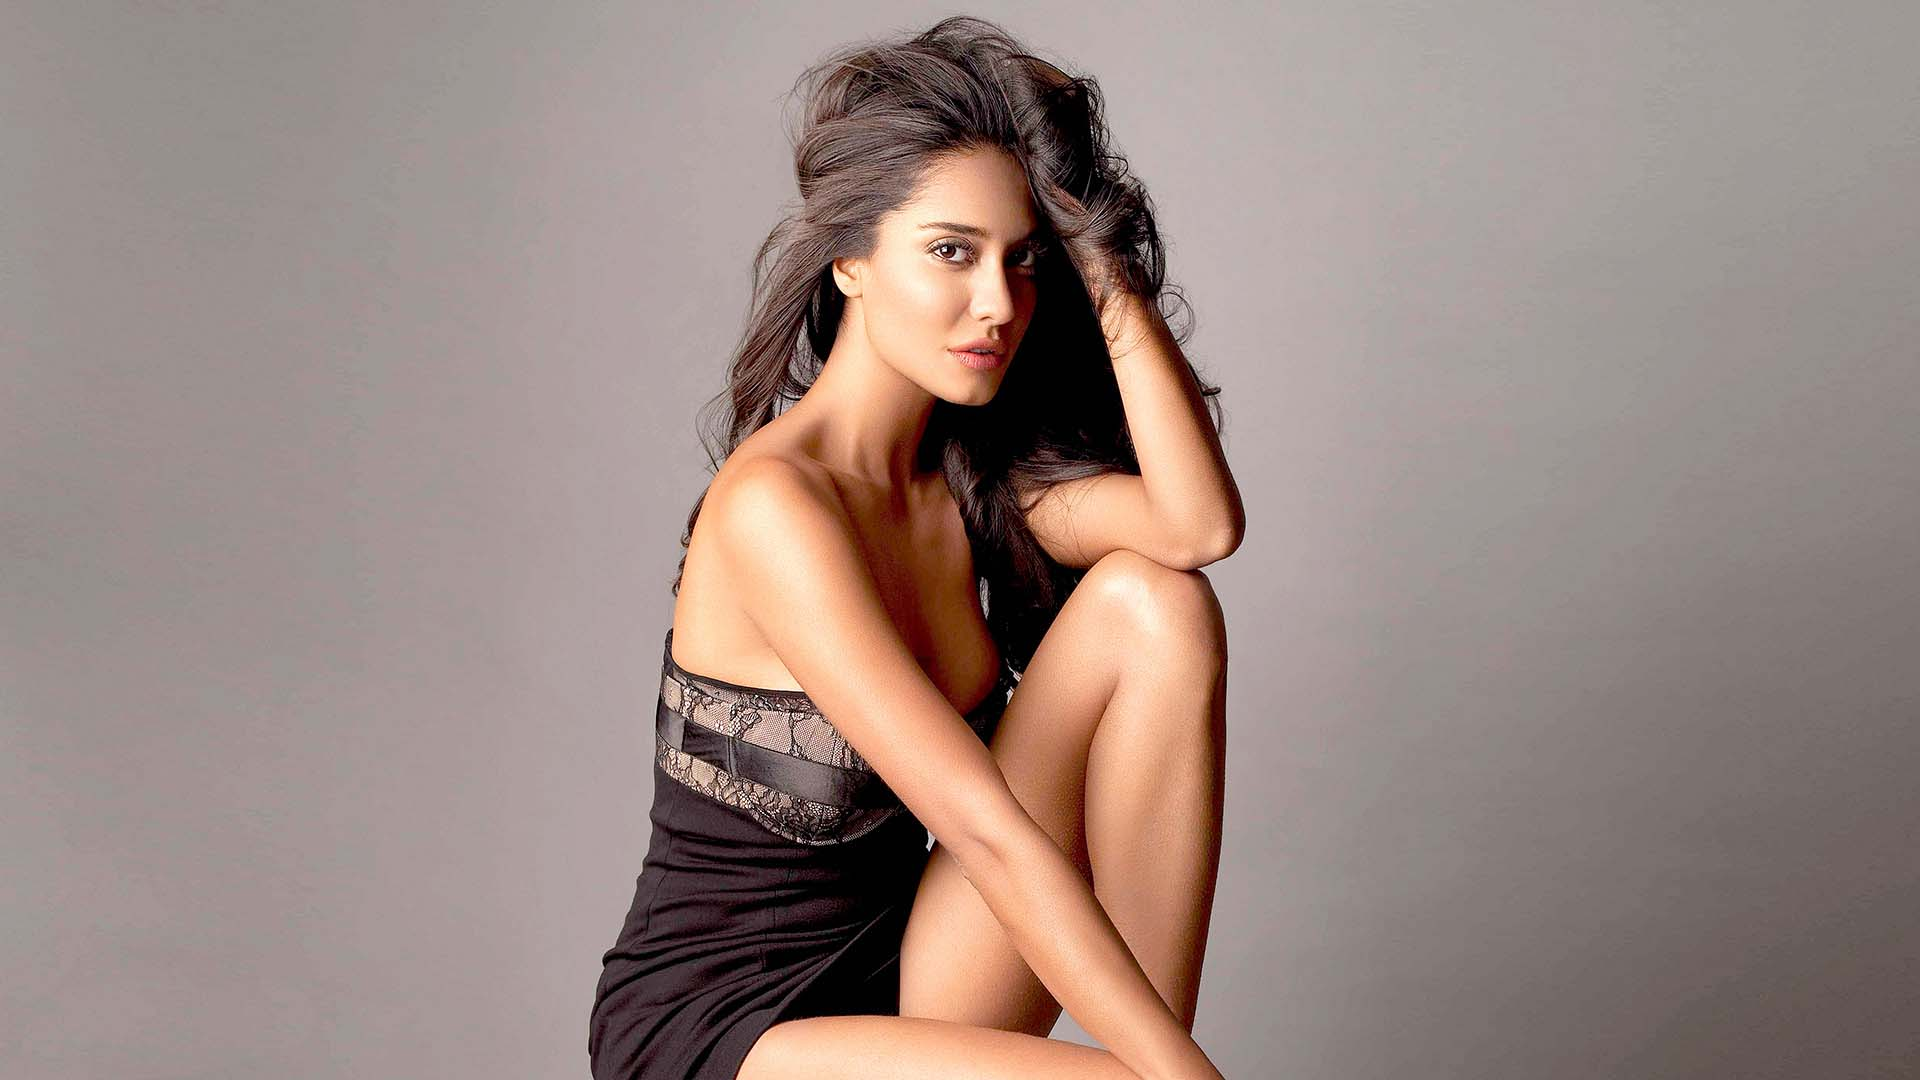 Lisa haydon hot wallpapers